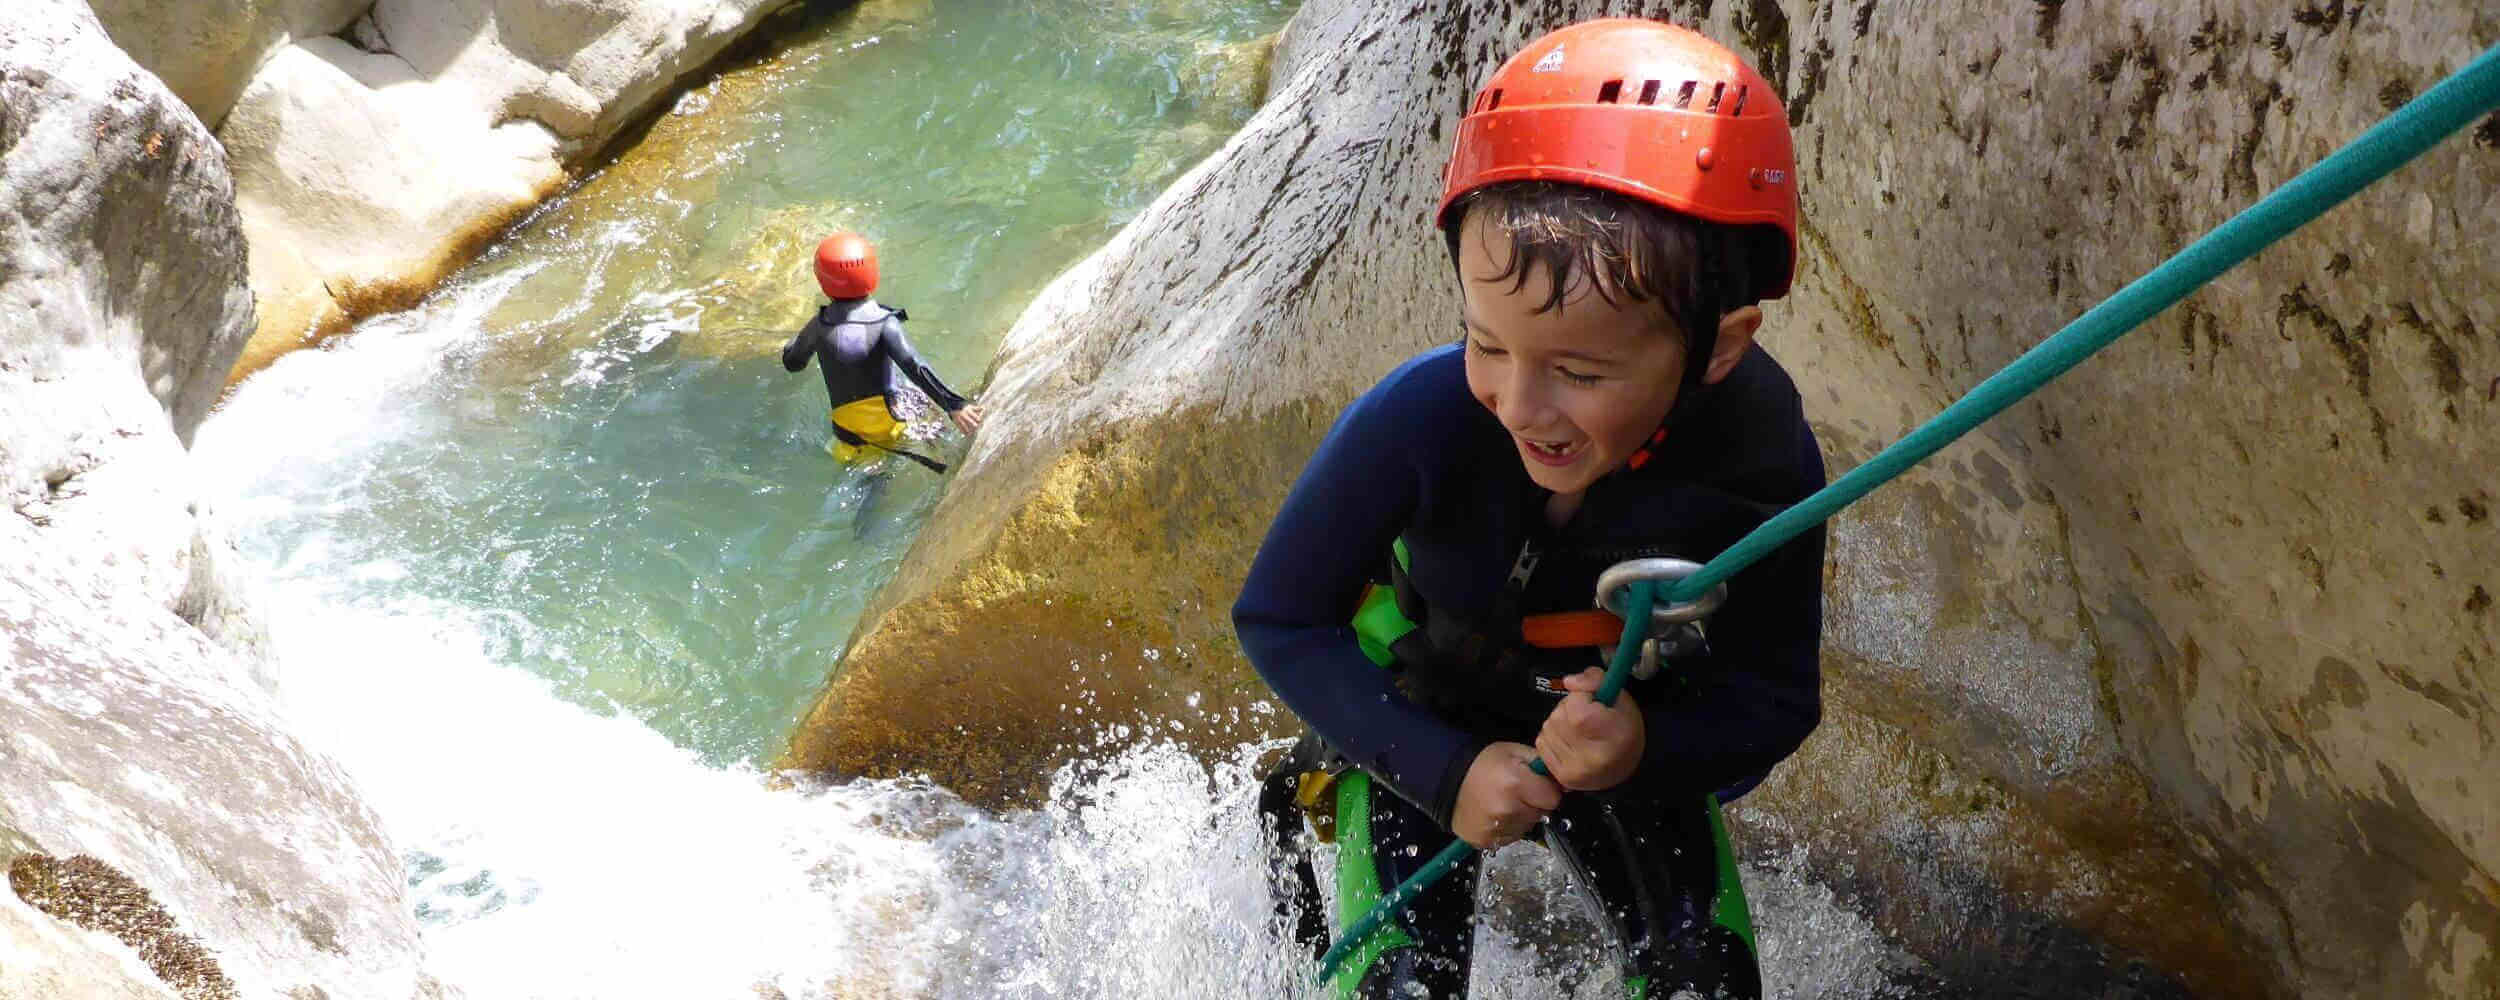 Rappelling canyoning Loup - Grasse Vence